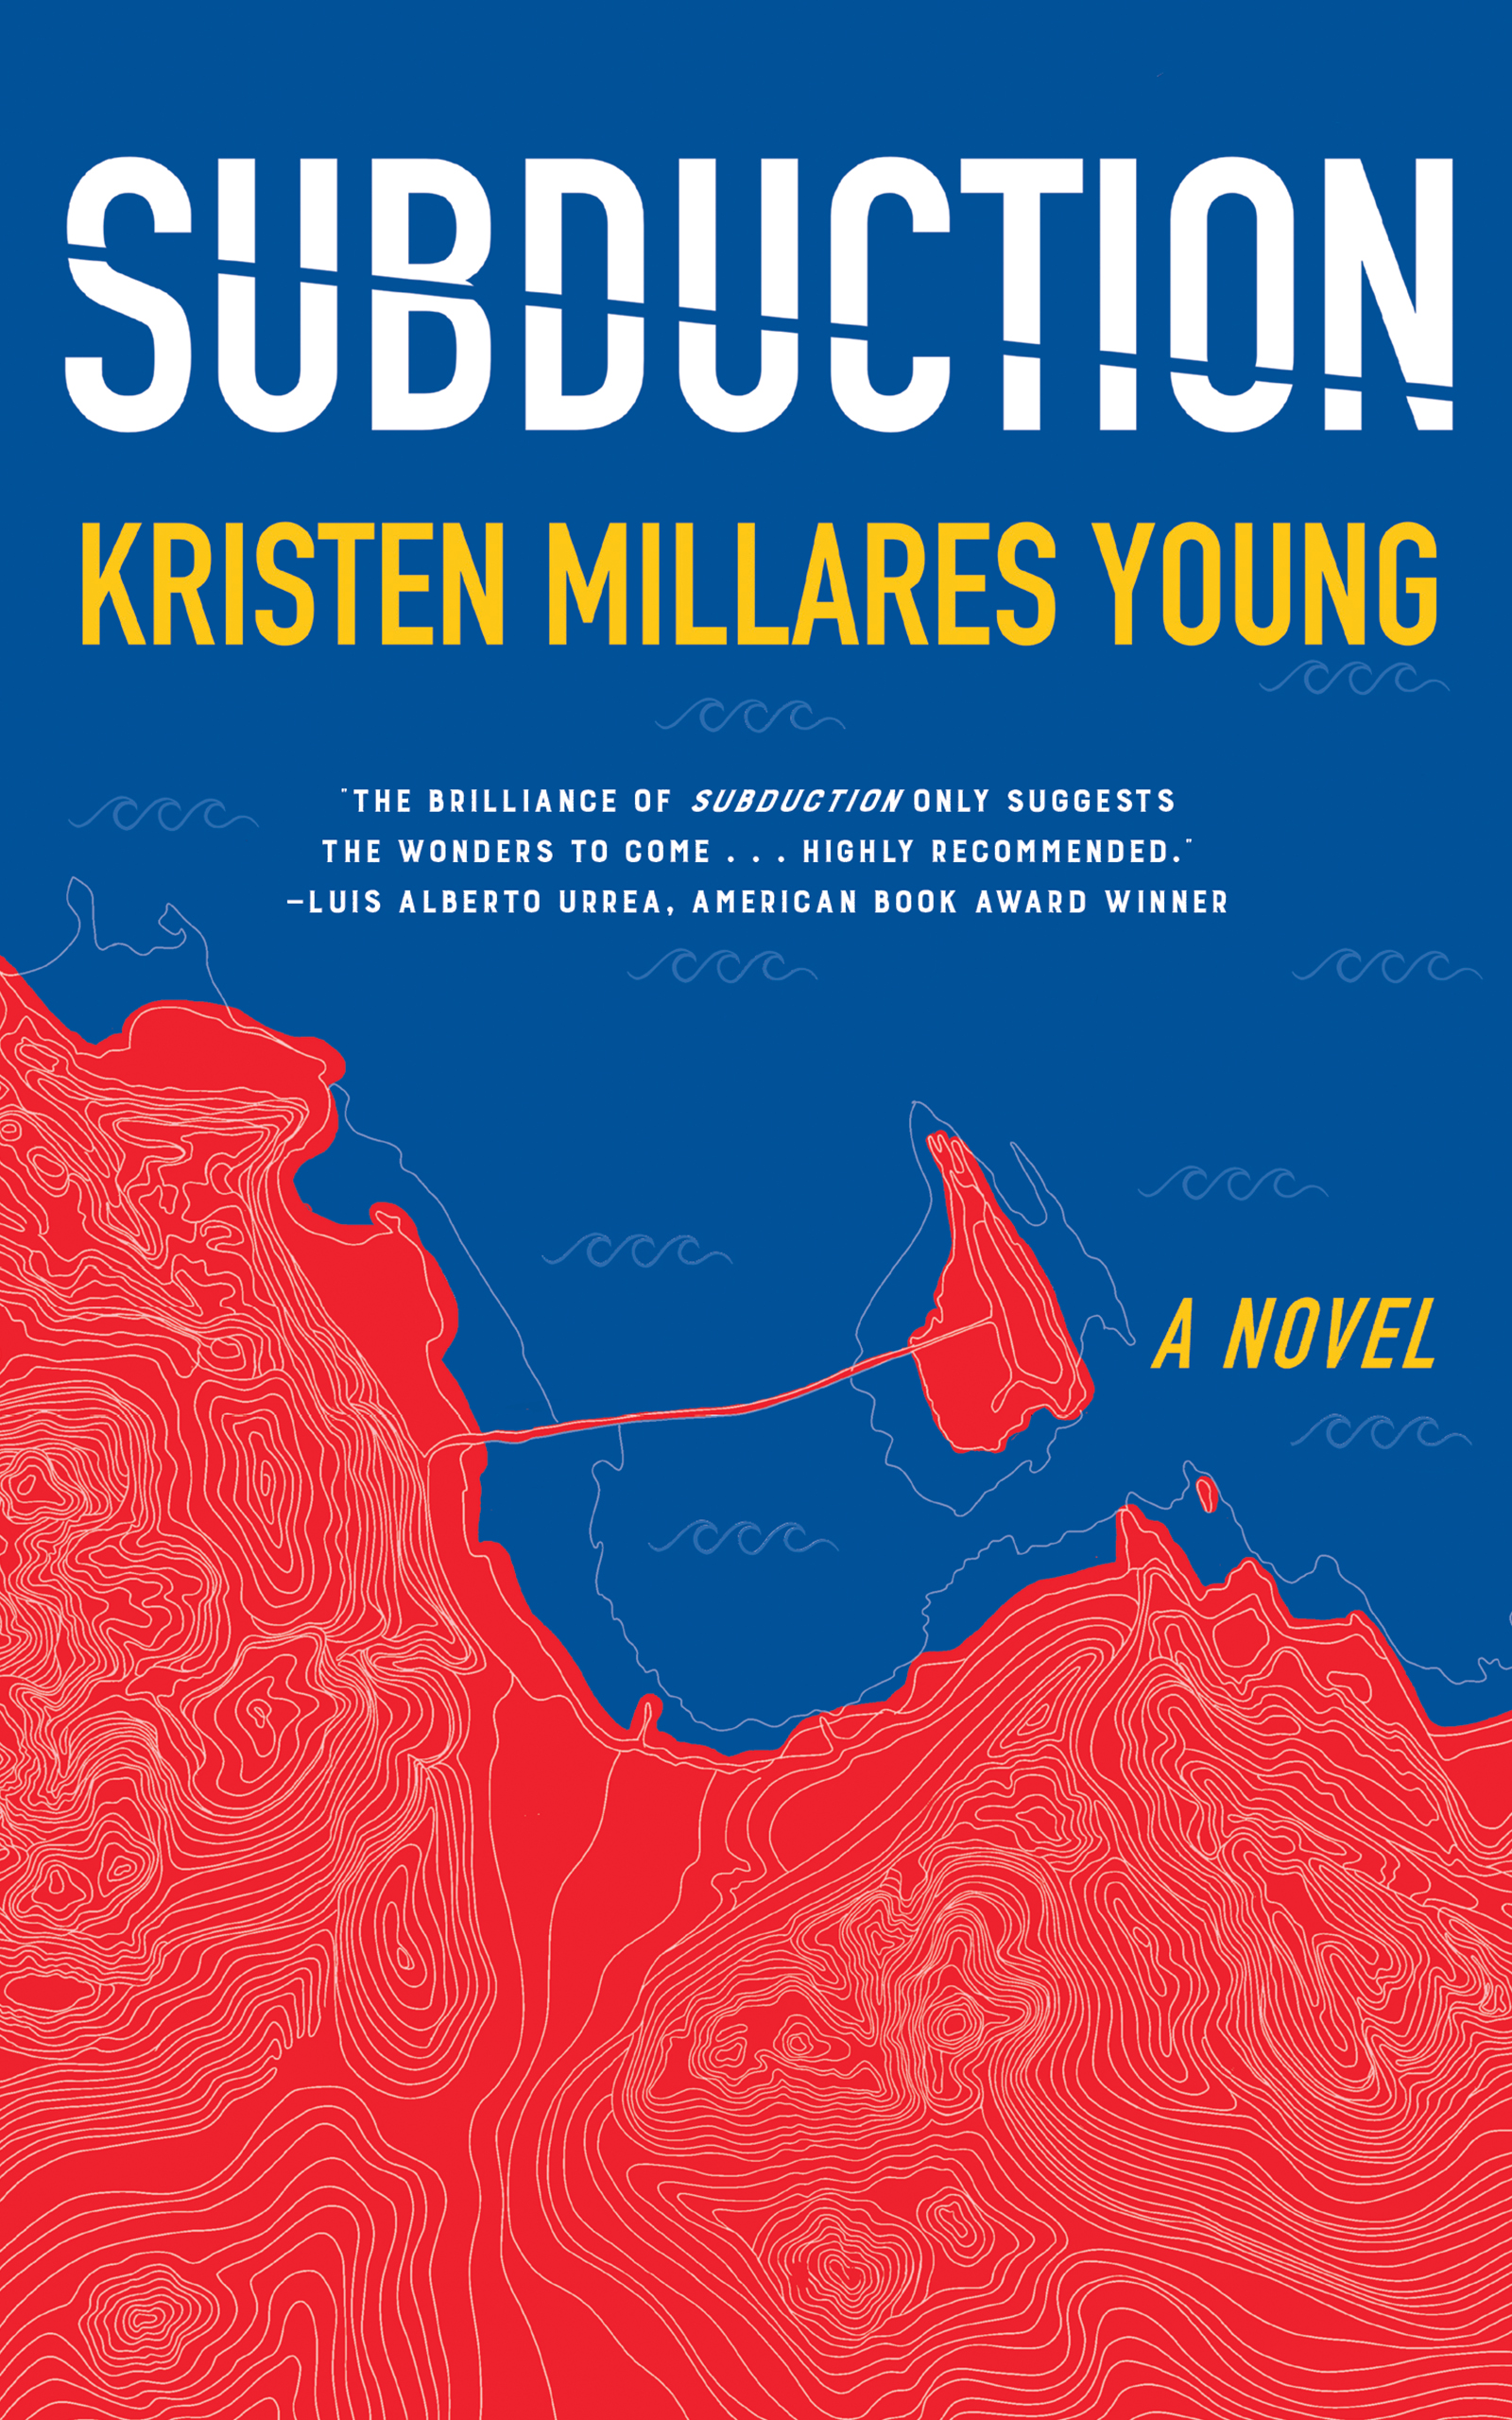 A graphic design of a blue ocean and a red geographic aerial view of a a piece of land and a neighboring island with white script at the top that reads Subduction a novel by Kristen Millares Young.